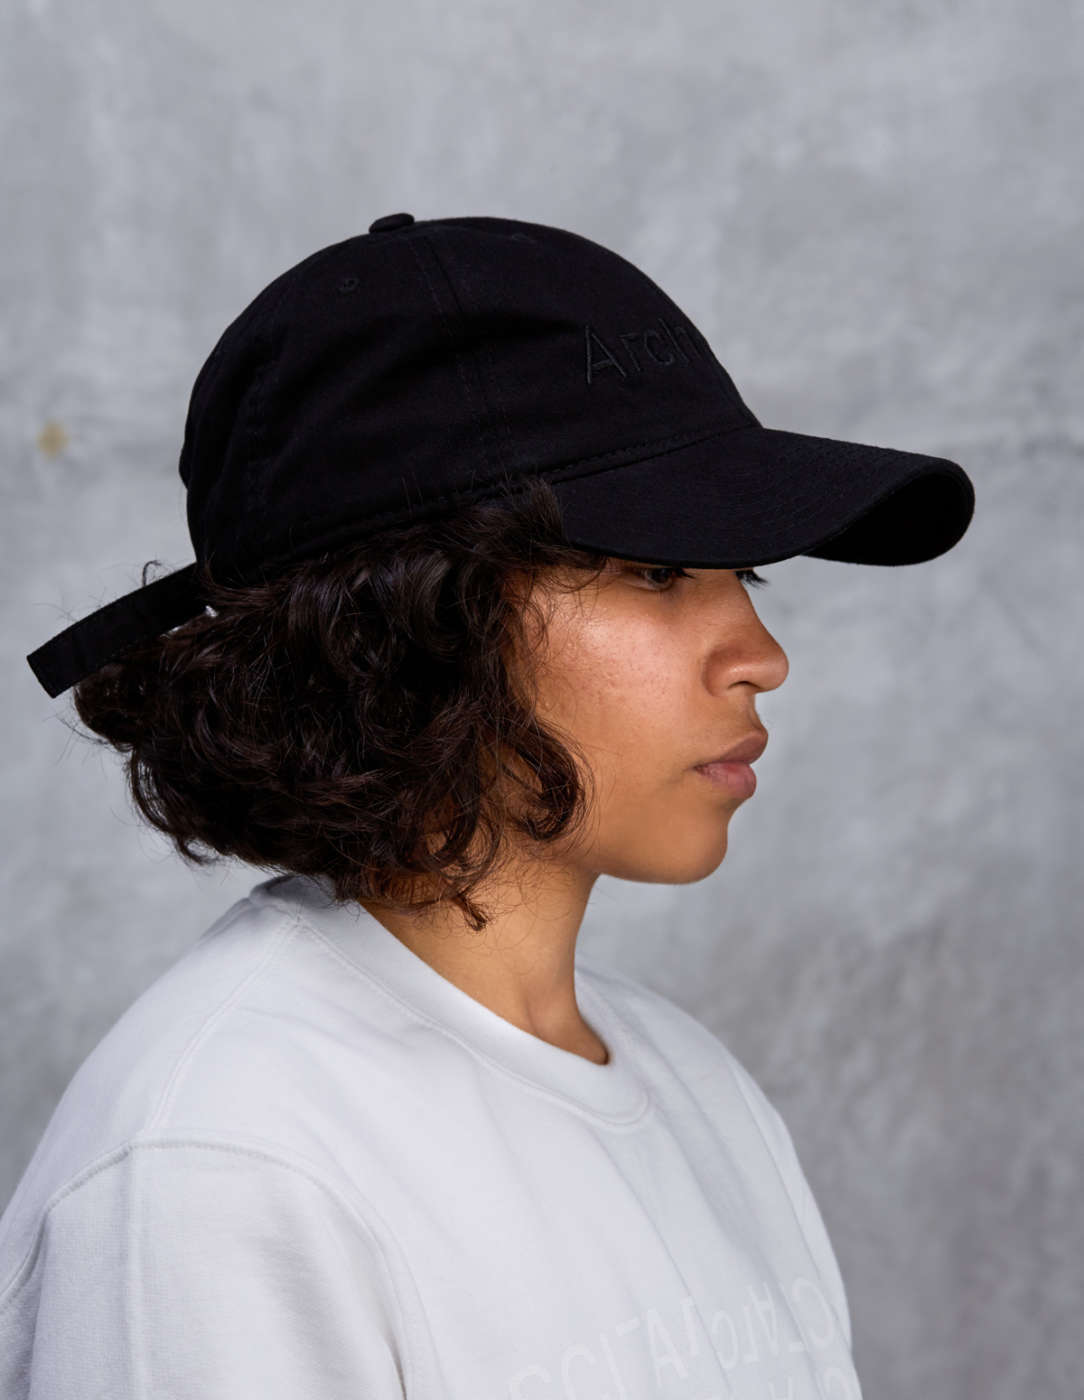 black on black architect logo hat on person